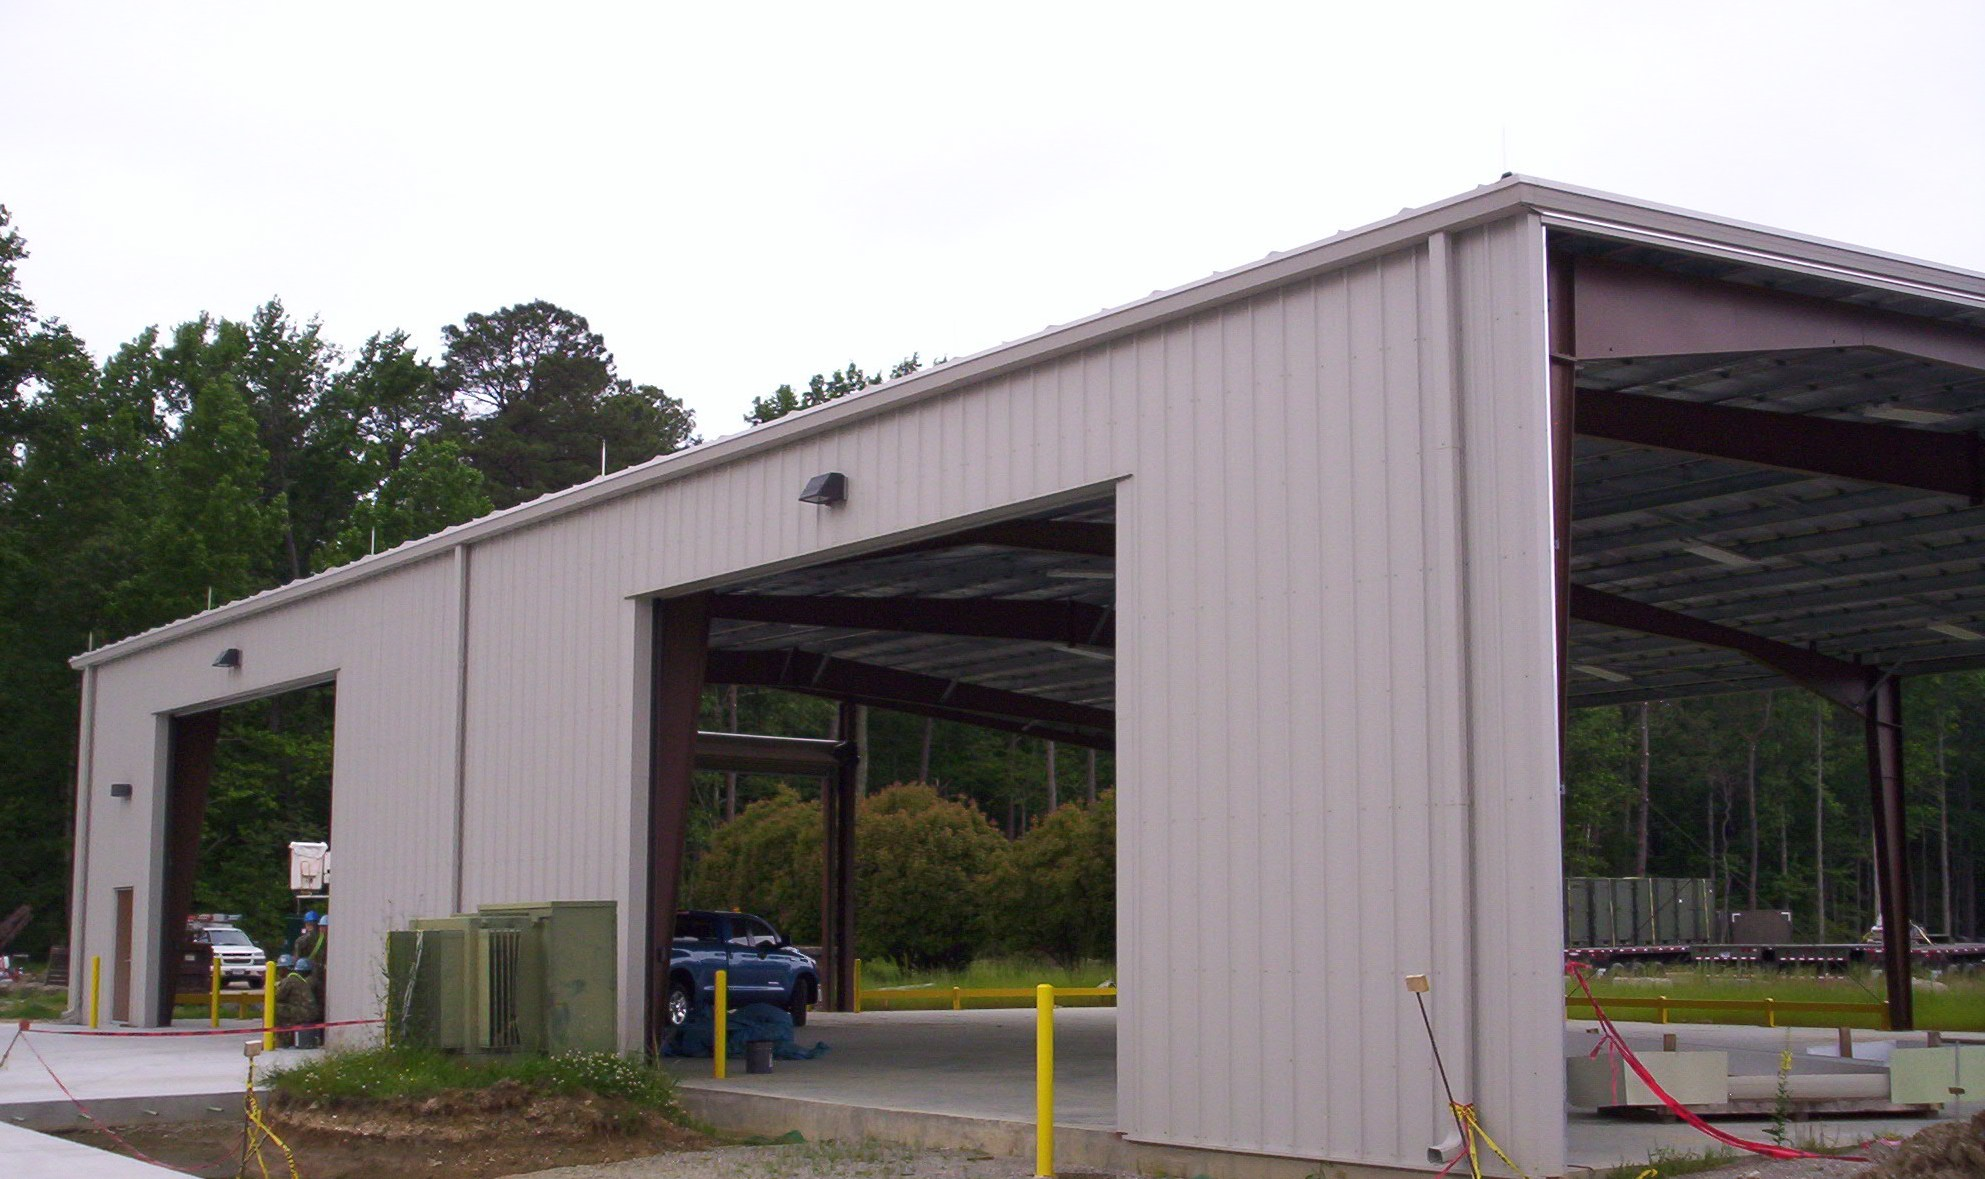 lightning protection systems can be installed for large and small storage facilities both during and